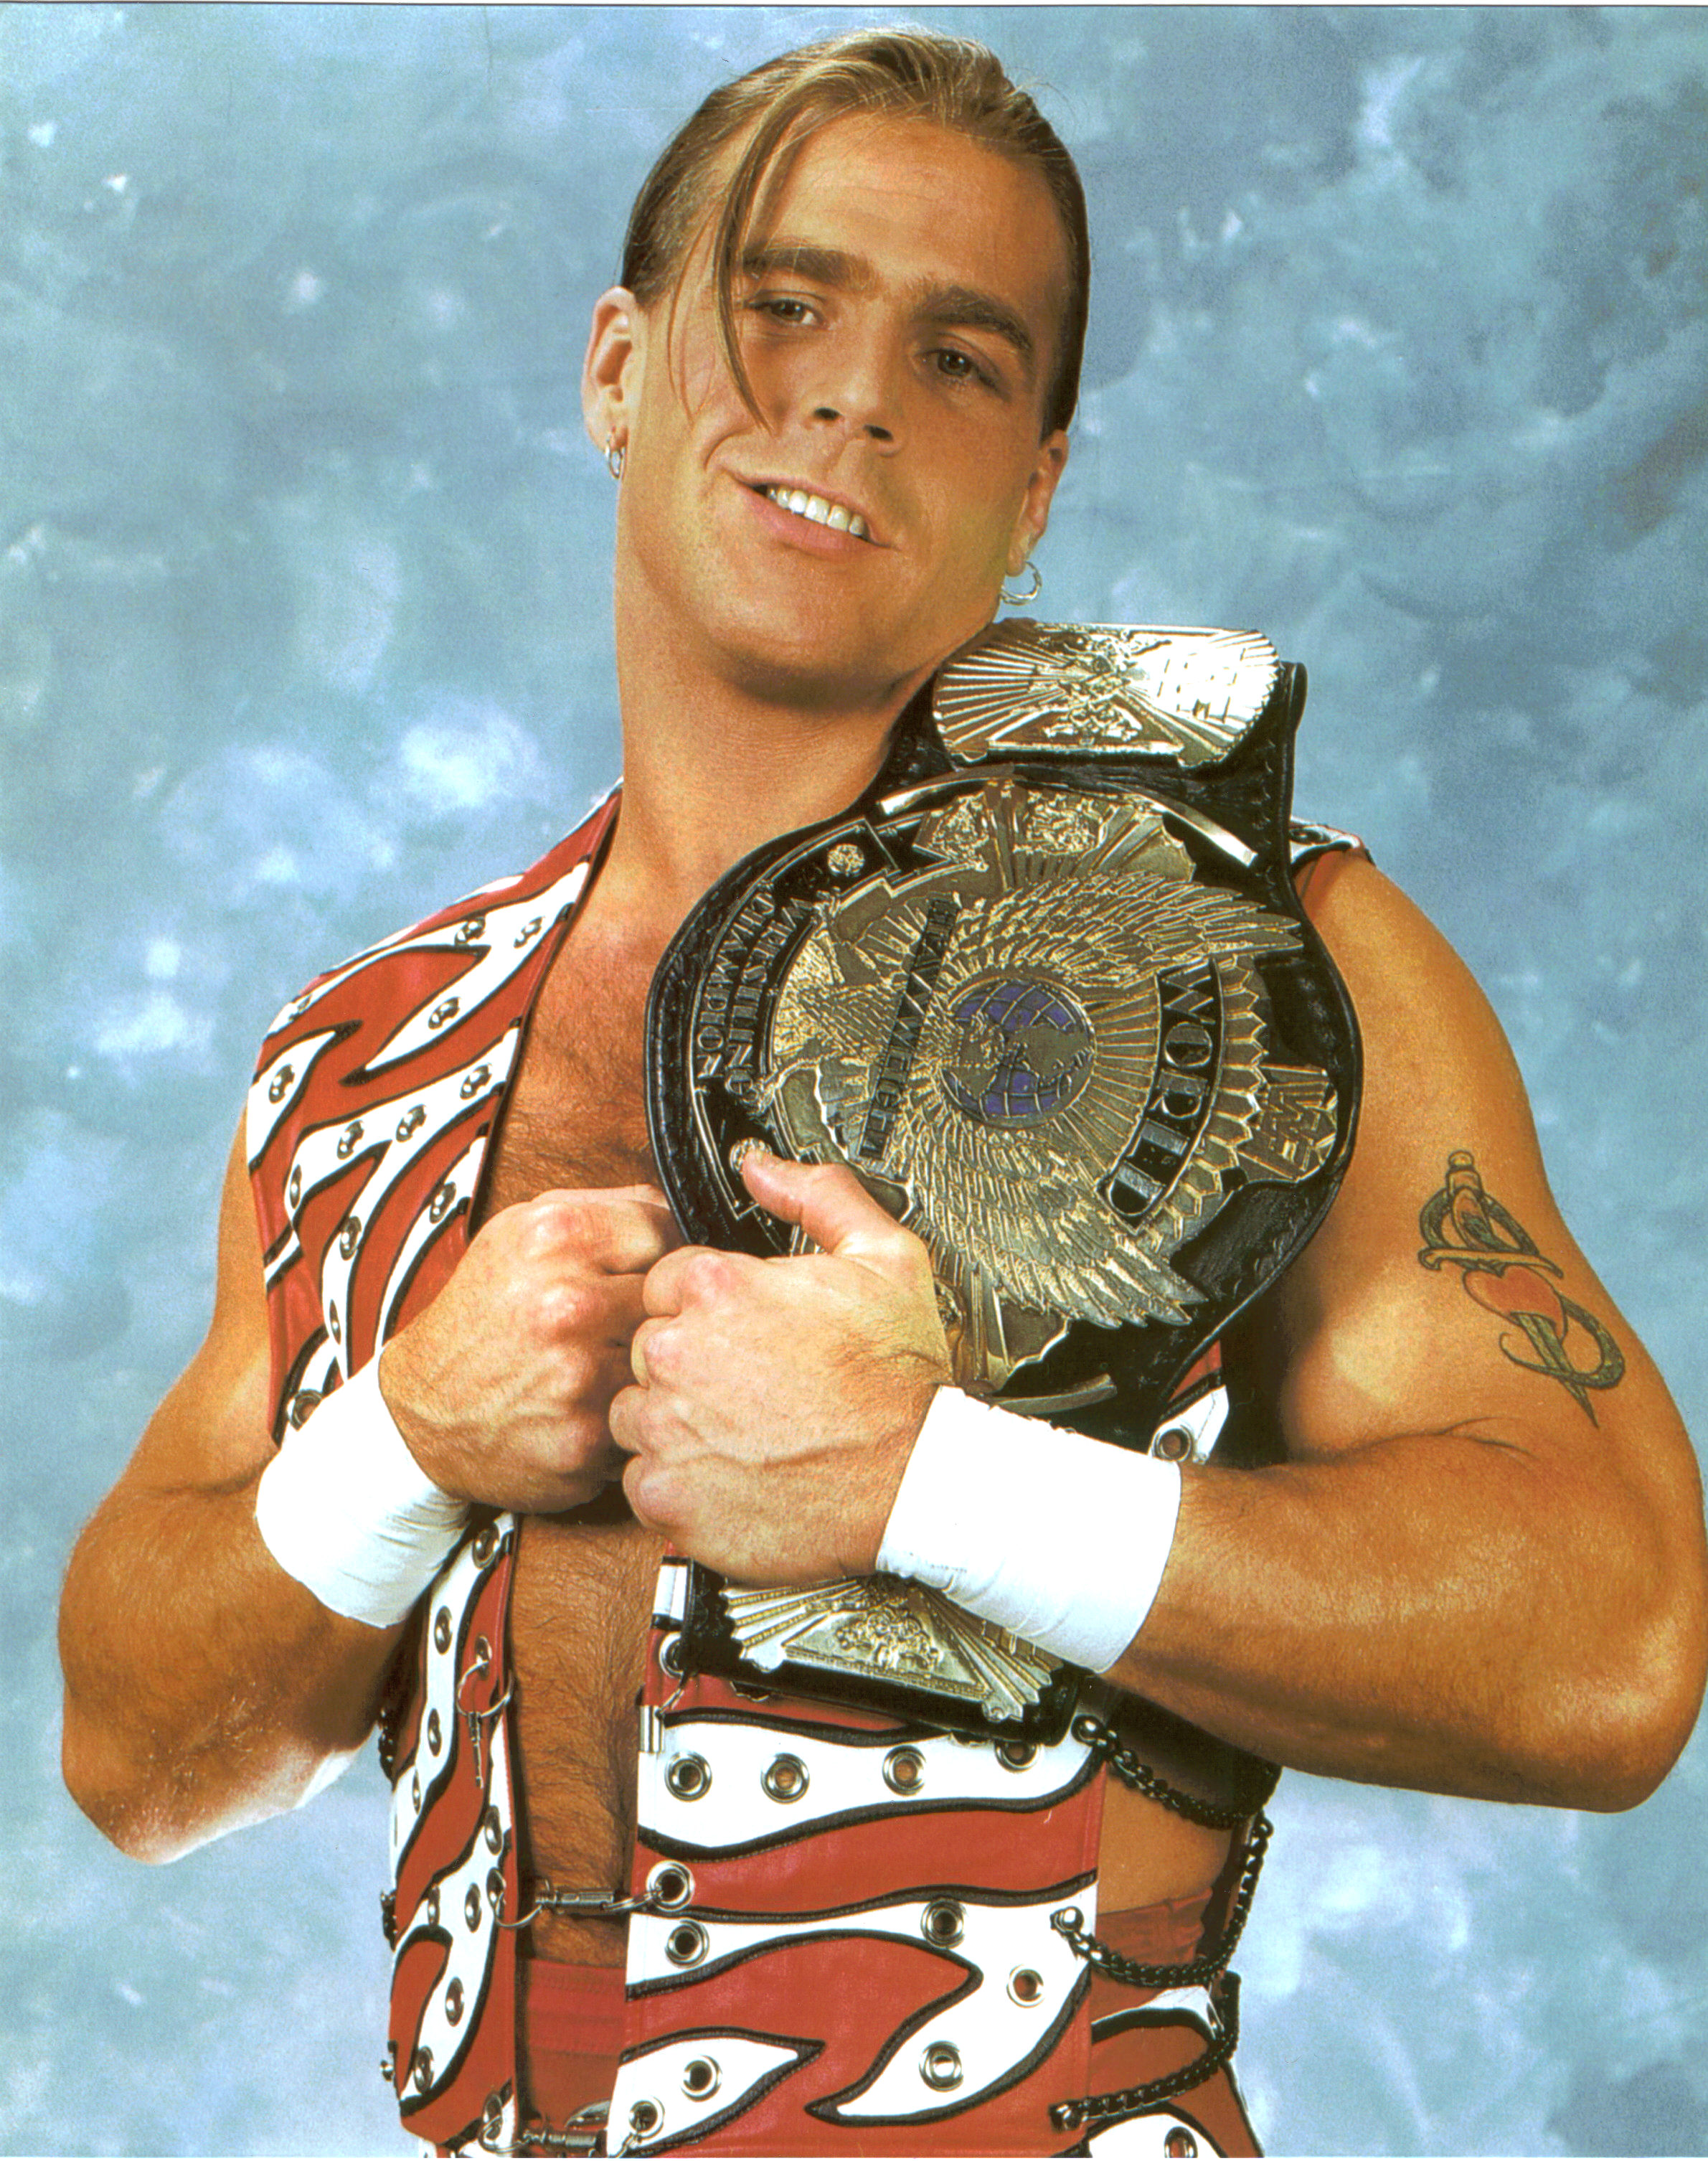 Shawn michaels returning to wwe-8388